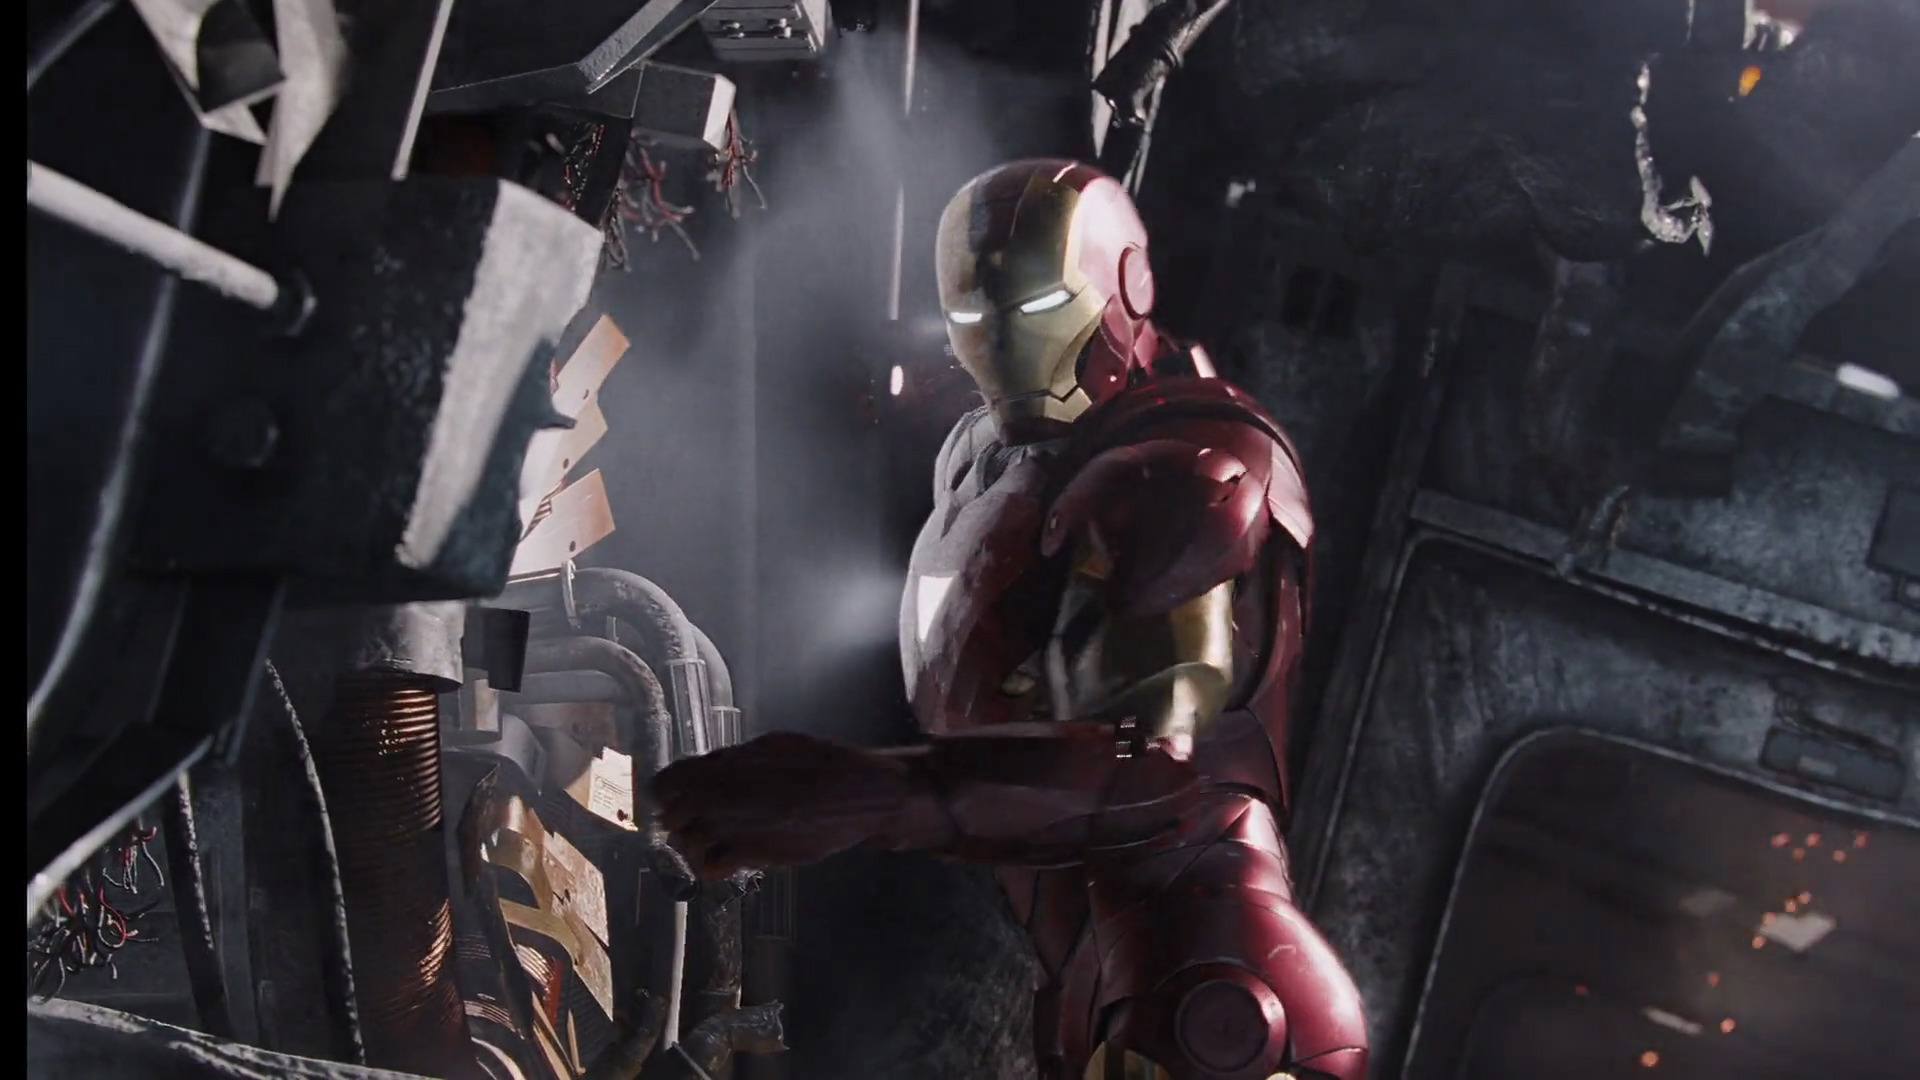 http://www.caps.media/201/2-avengers/full/avengers-movie-screencaps.com-9011.jpg